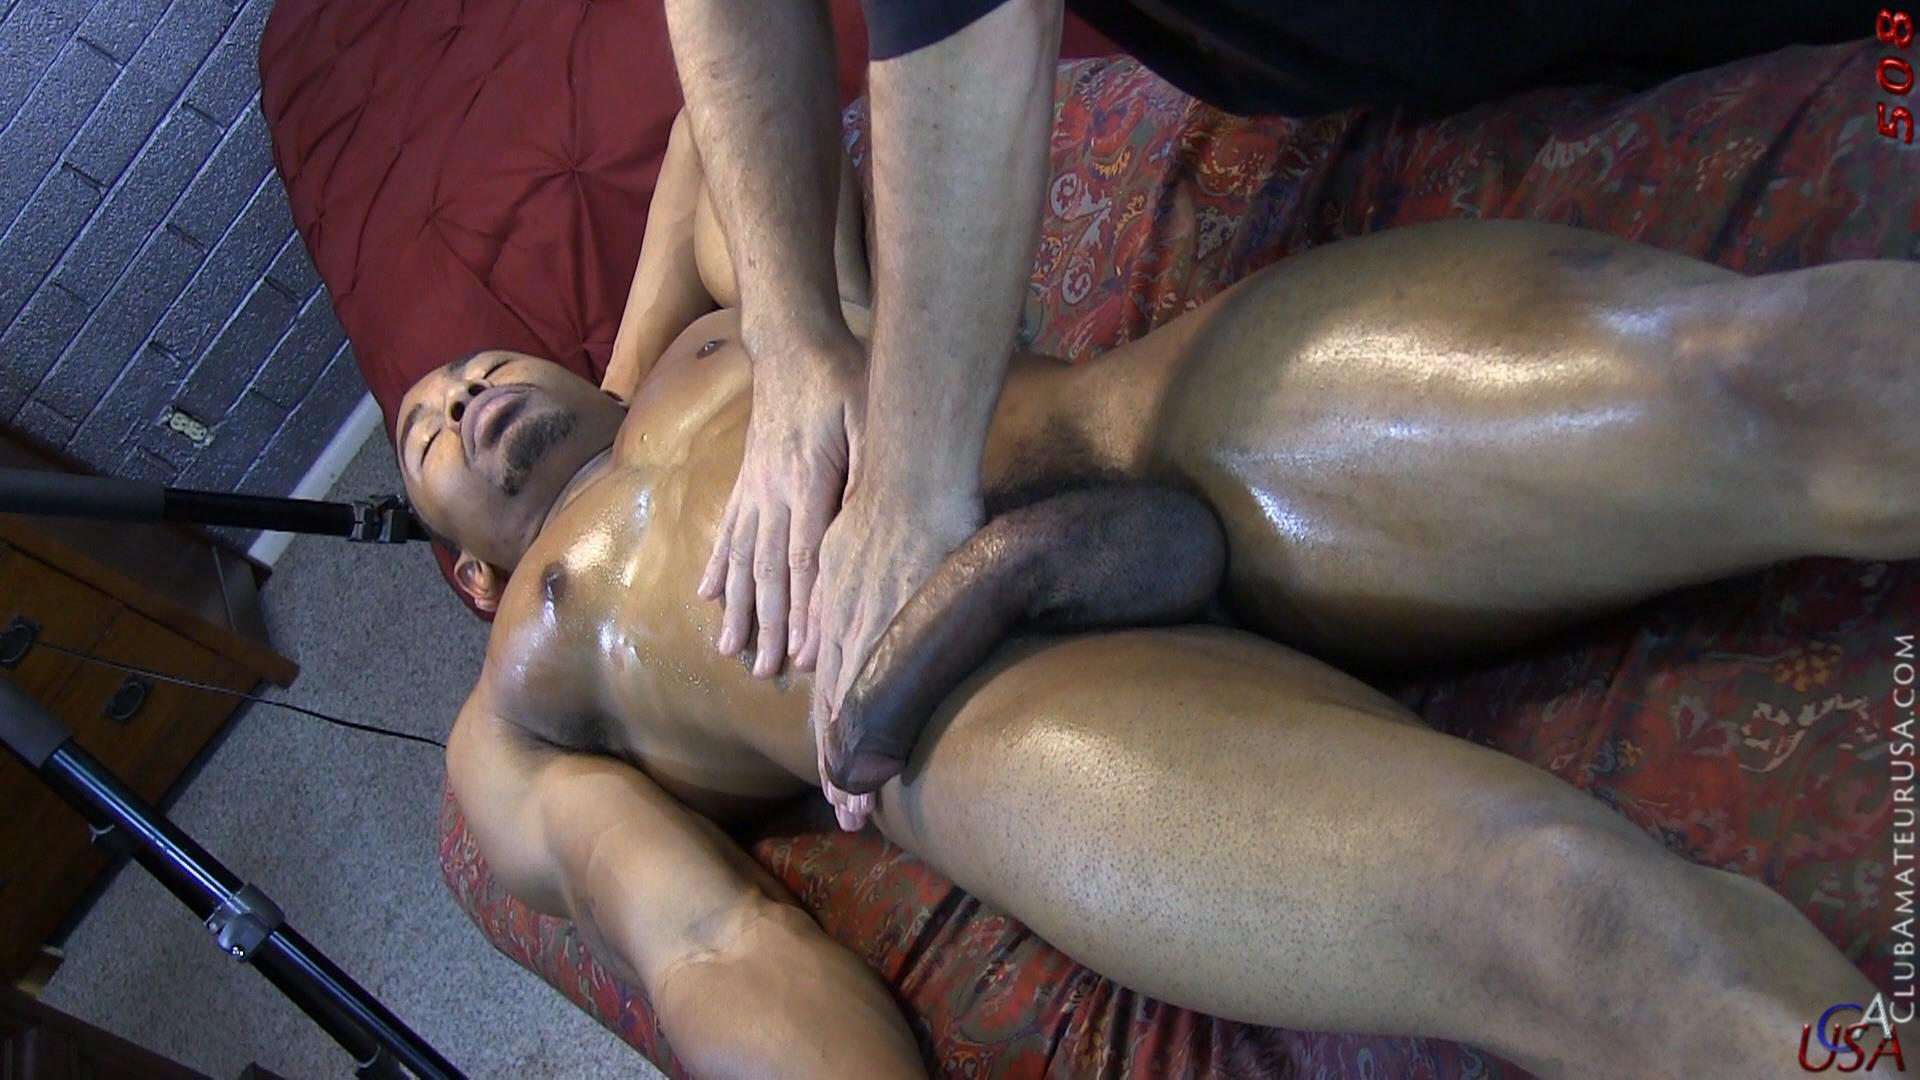 Club-Amateur-USA-Gracen-Straight-Big-Black-Cock-Getting-Sucked-With-Cum-Amateur-Gay-Porn-19 Straight Ghetto Thug Gets A Massage With A Happy Ending From A Guy